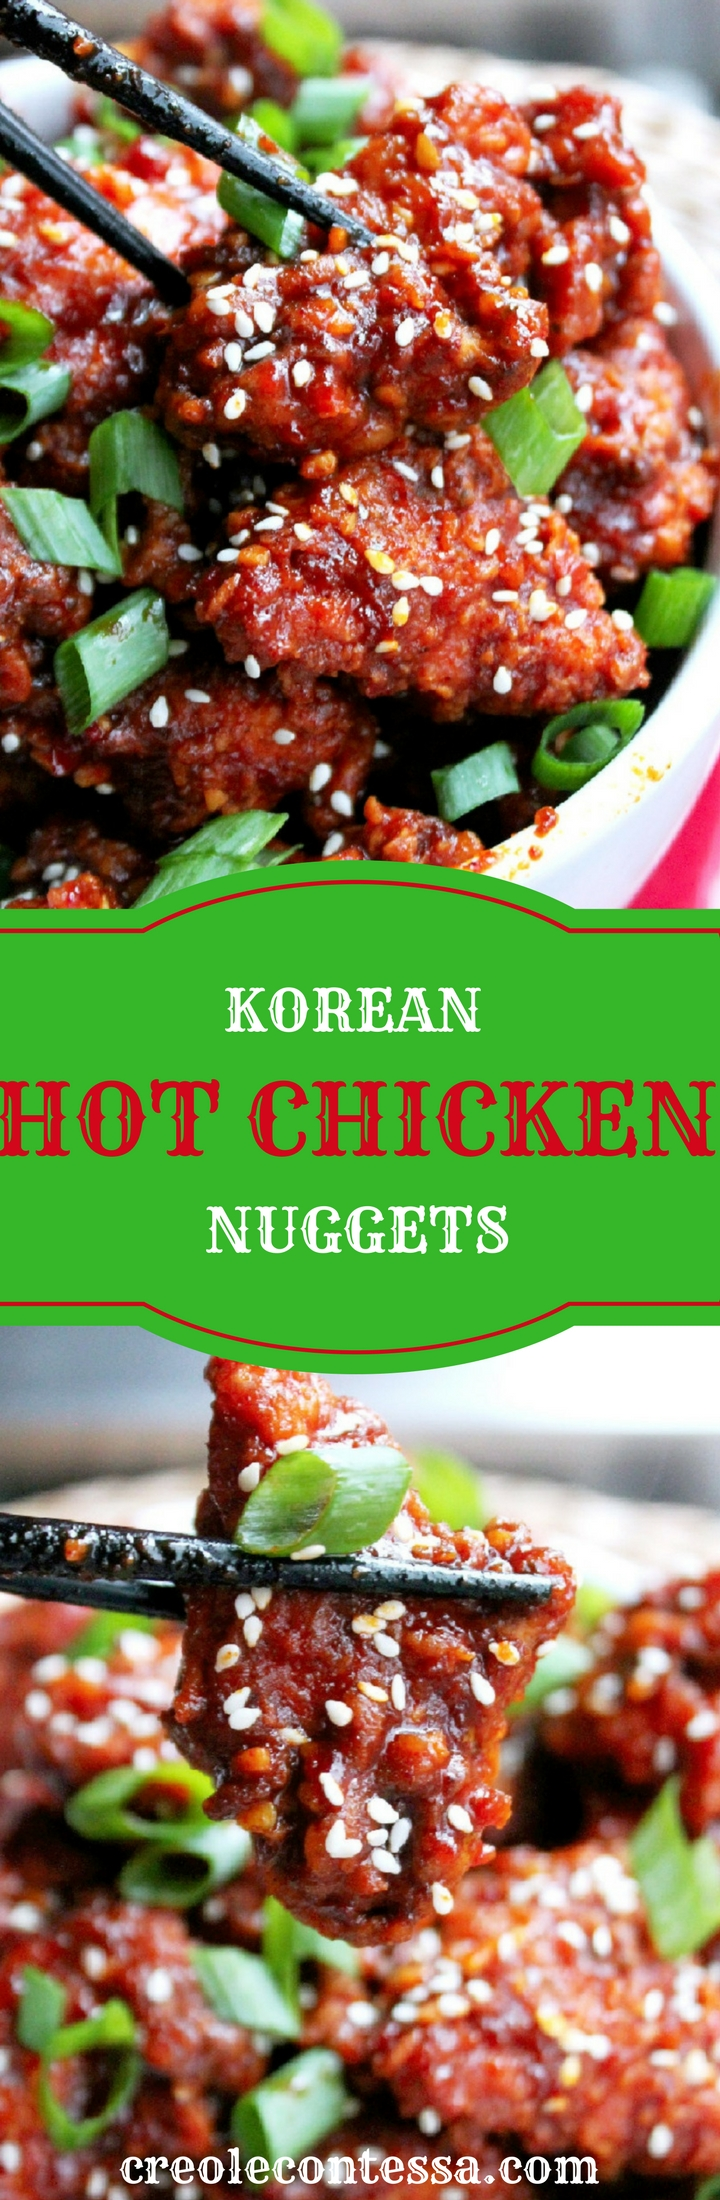 Korean Hot Chicken Nuggets-Creole Contessa